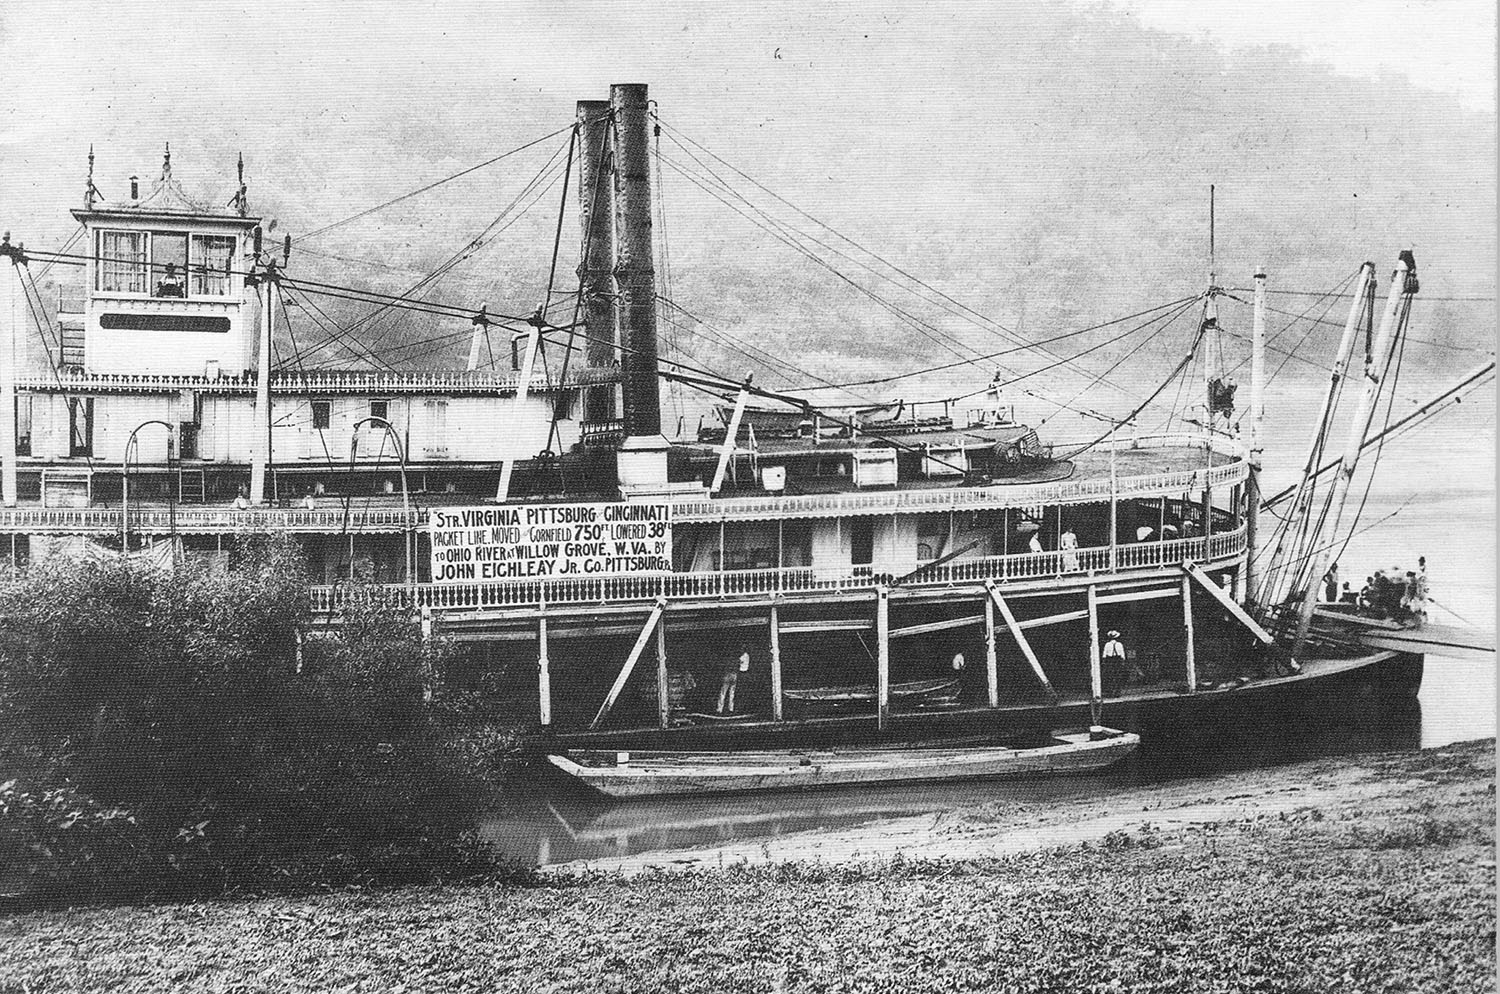 The Steamer Virginia